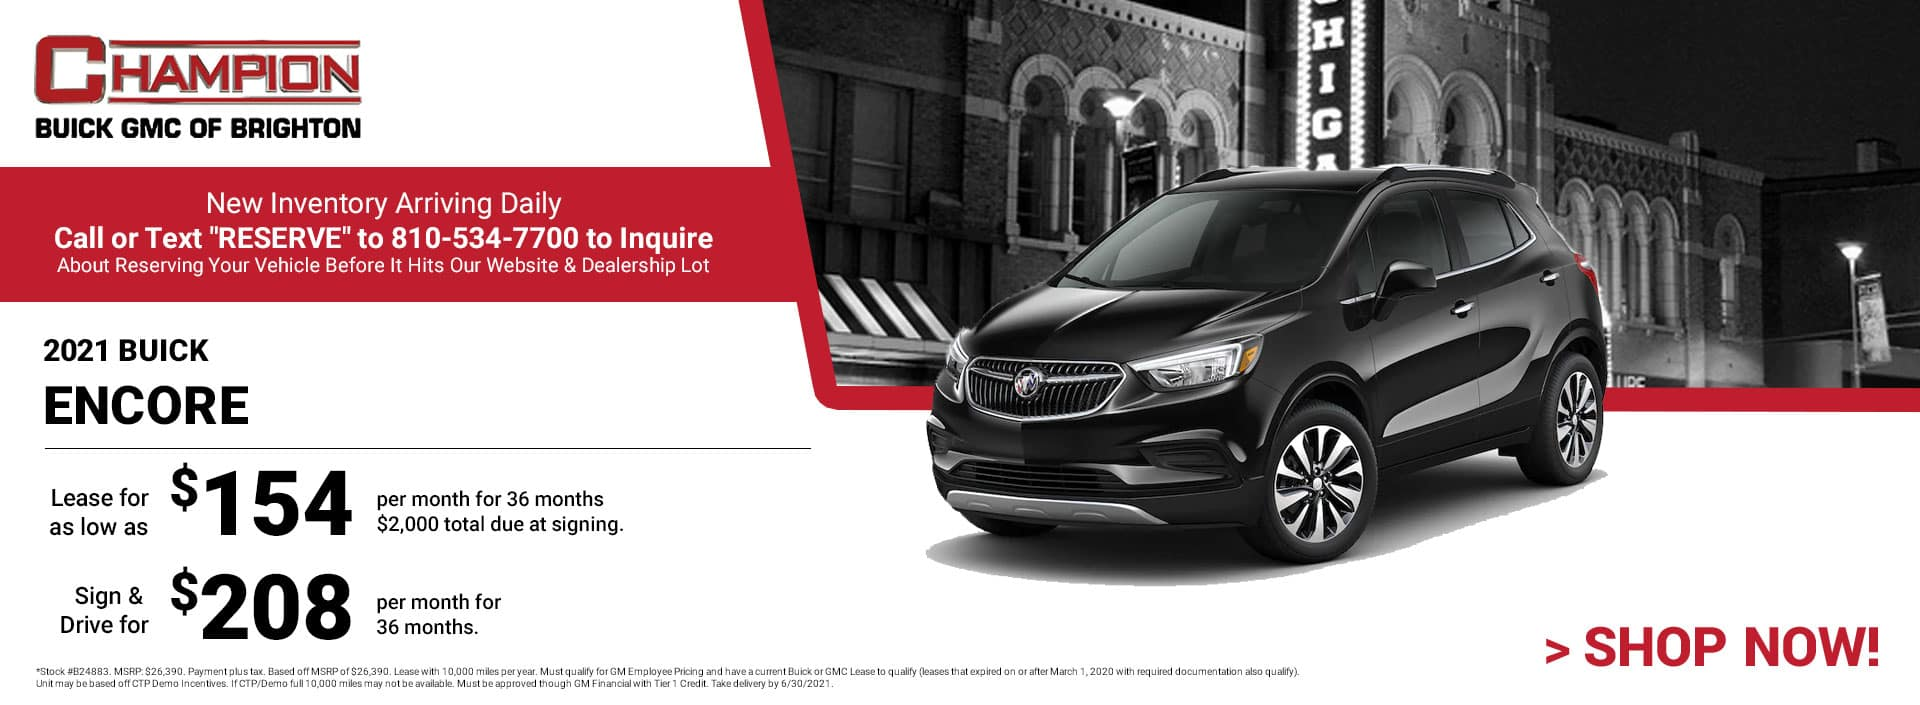 2021 Buick Encore - Lease for just: $154 per month for 36 months $2,000 total due at signing. Sign & Drive for $208 per month for 36 months. *Stock #B24883. MSRP: $26,390